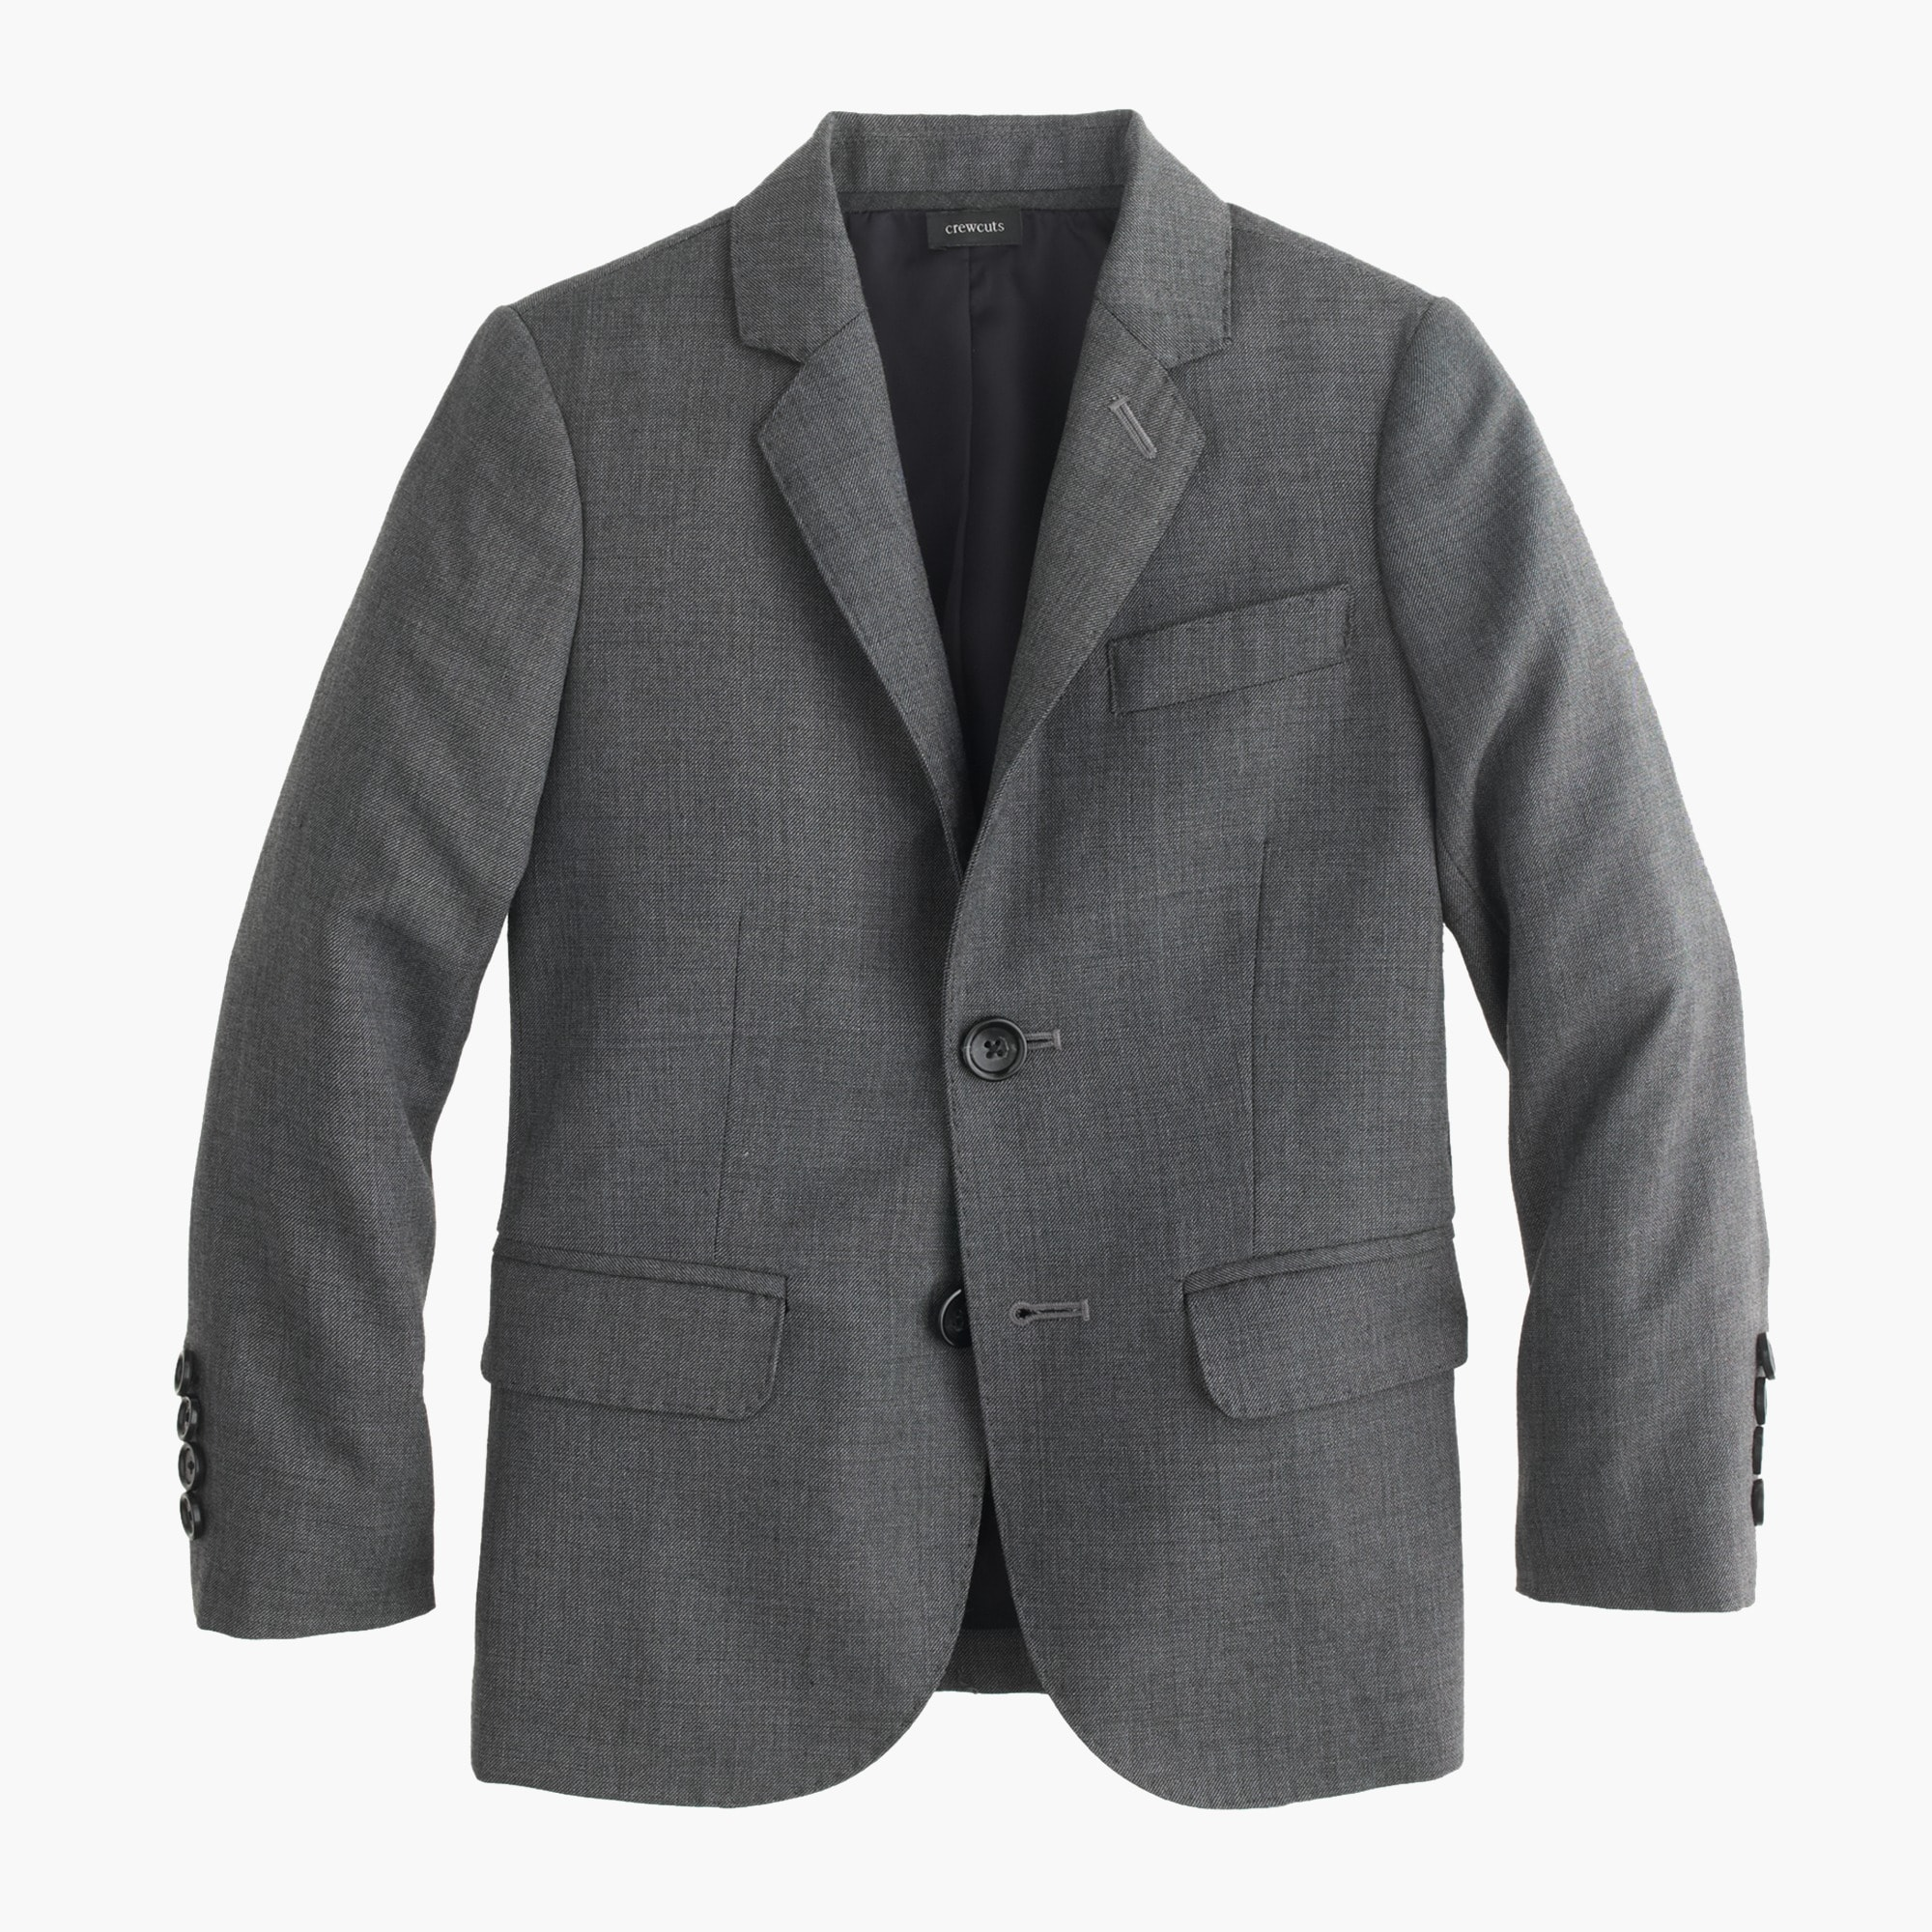 Boys' Ludlow suit jacket in Italian worsted wool boy blazers & vests c